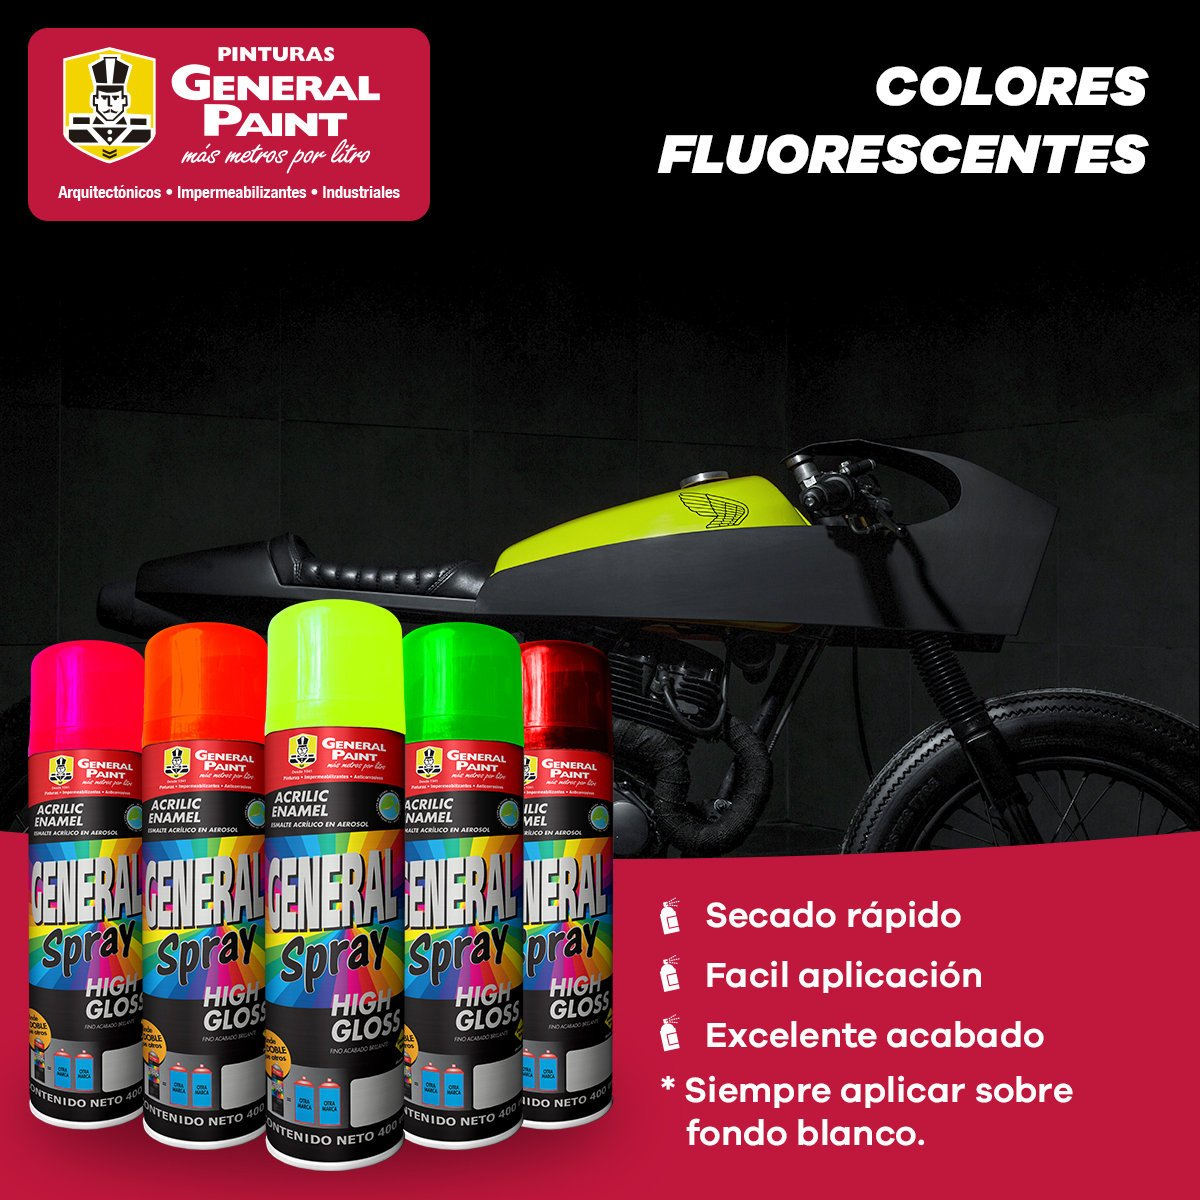 https://0201.nccdn.net/1_2/000/000/0aa/943/Spray-Fluorescente-1200x1200.jpg